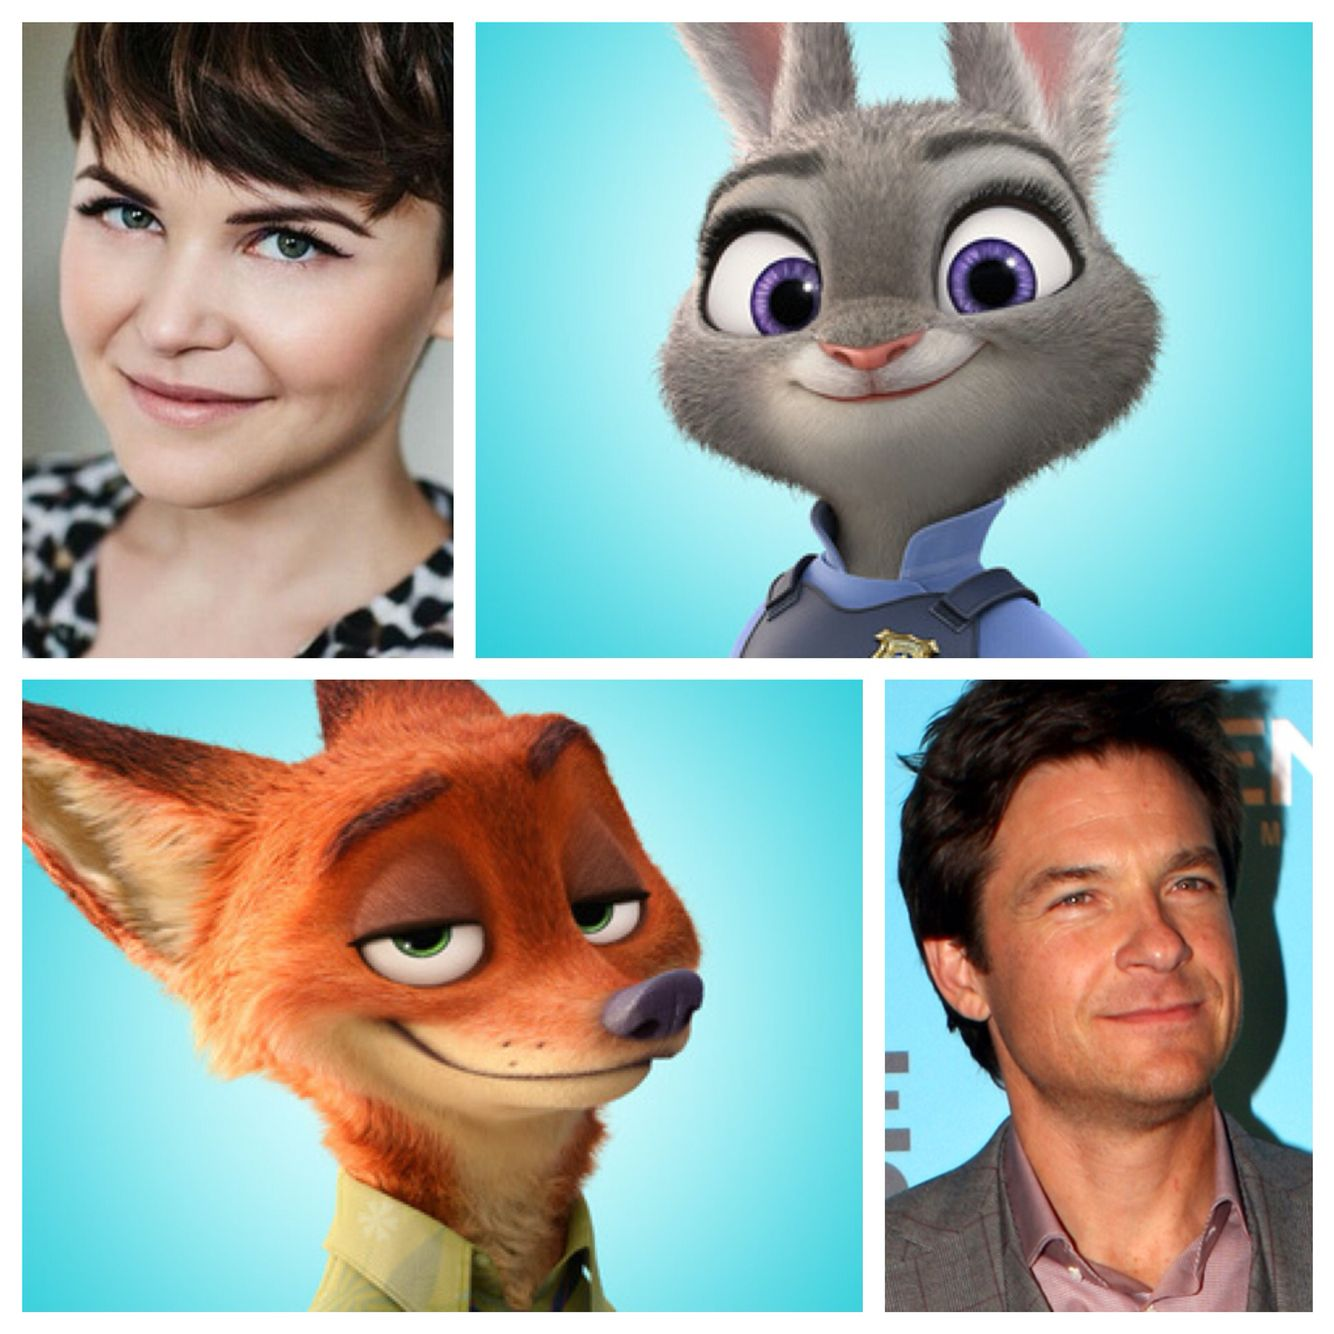 Zootopia Can We Just Appreciate The Similarities Between The Characters And Voice Actors For A Moment I Mean Nick Wilde Is Jason Bateman